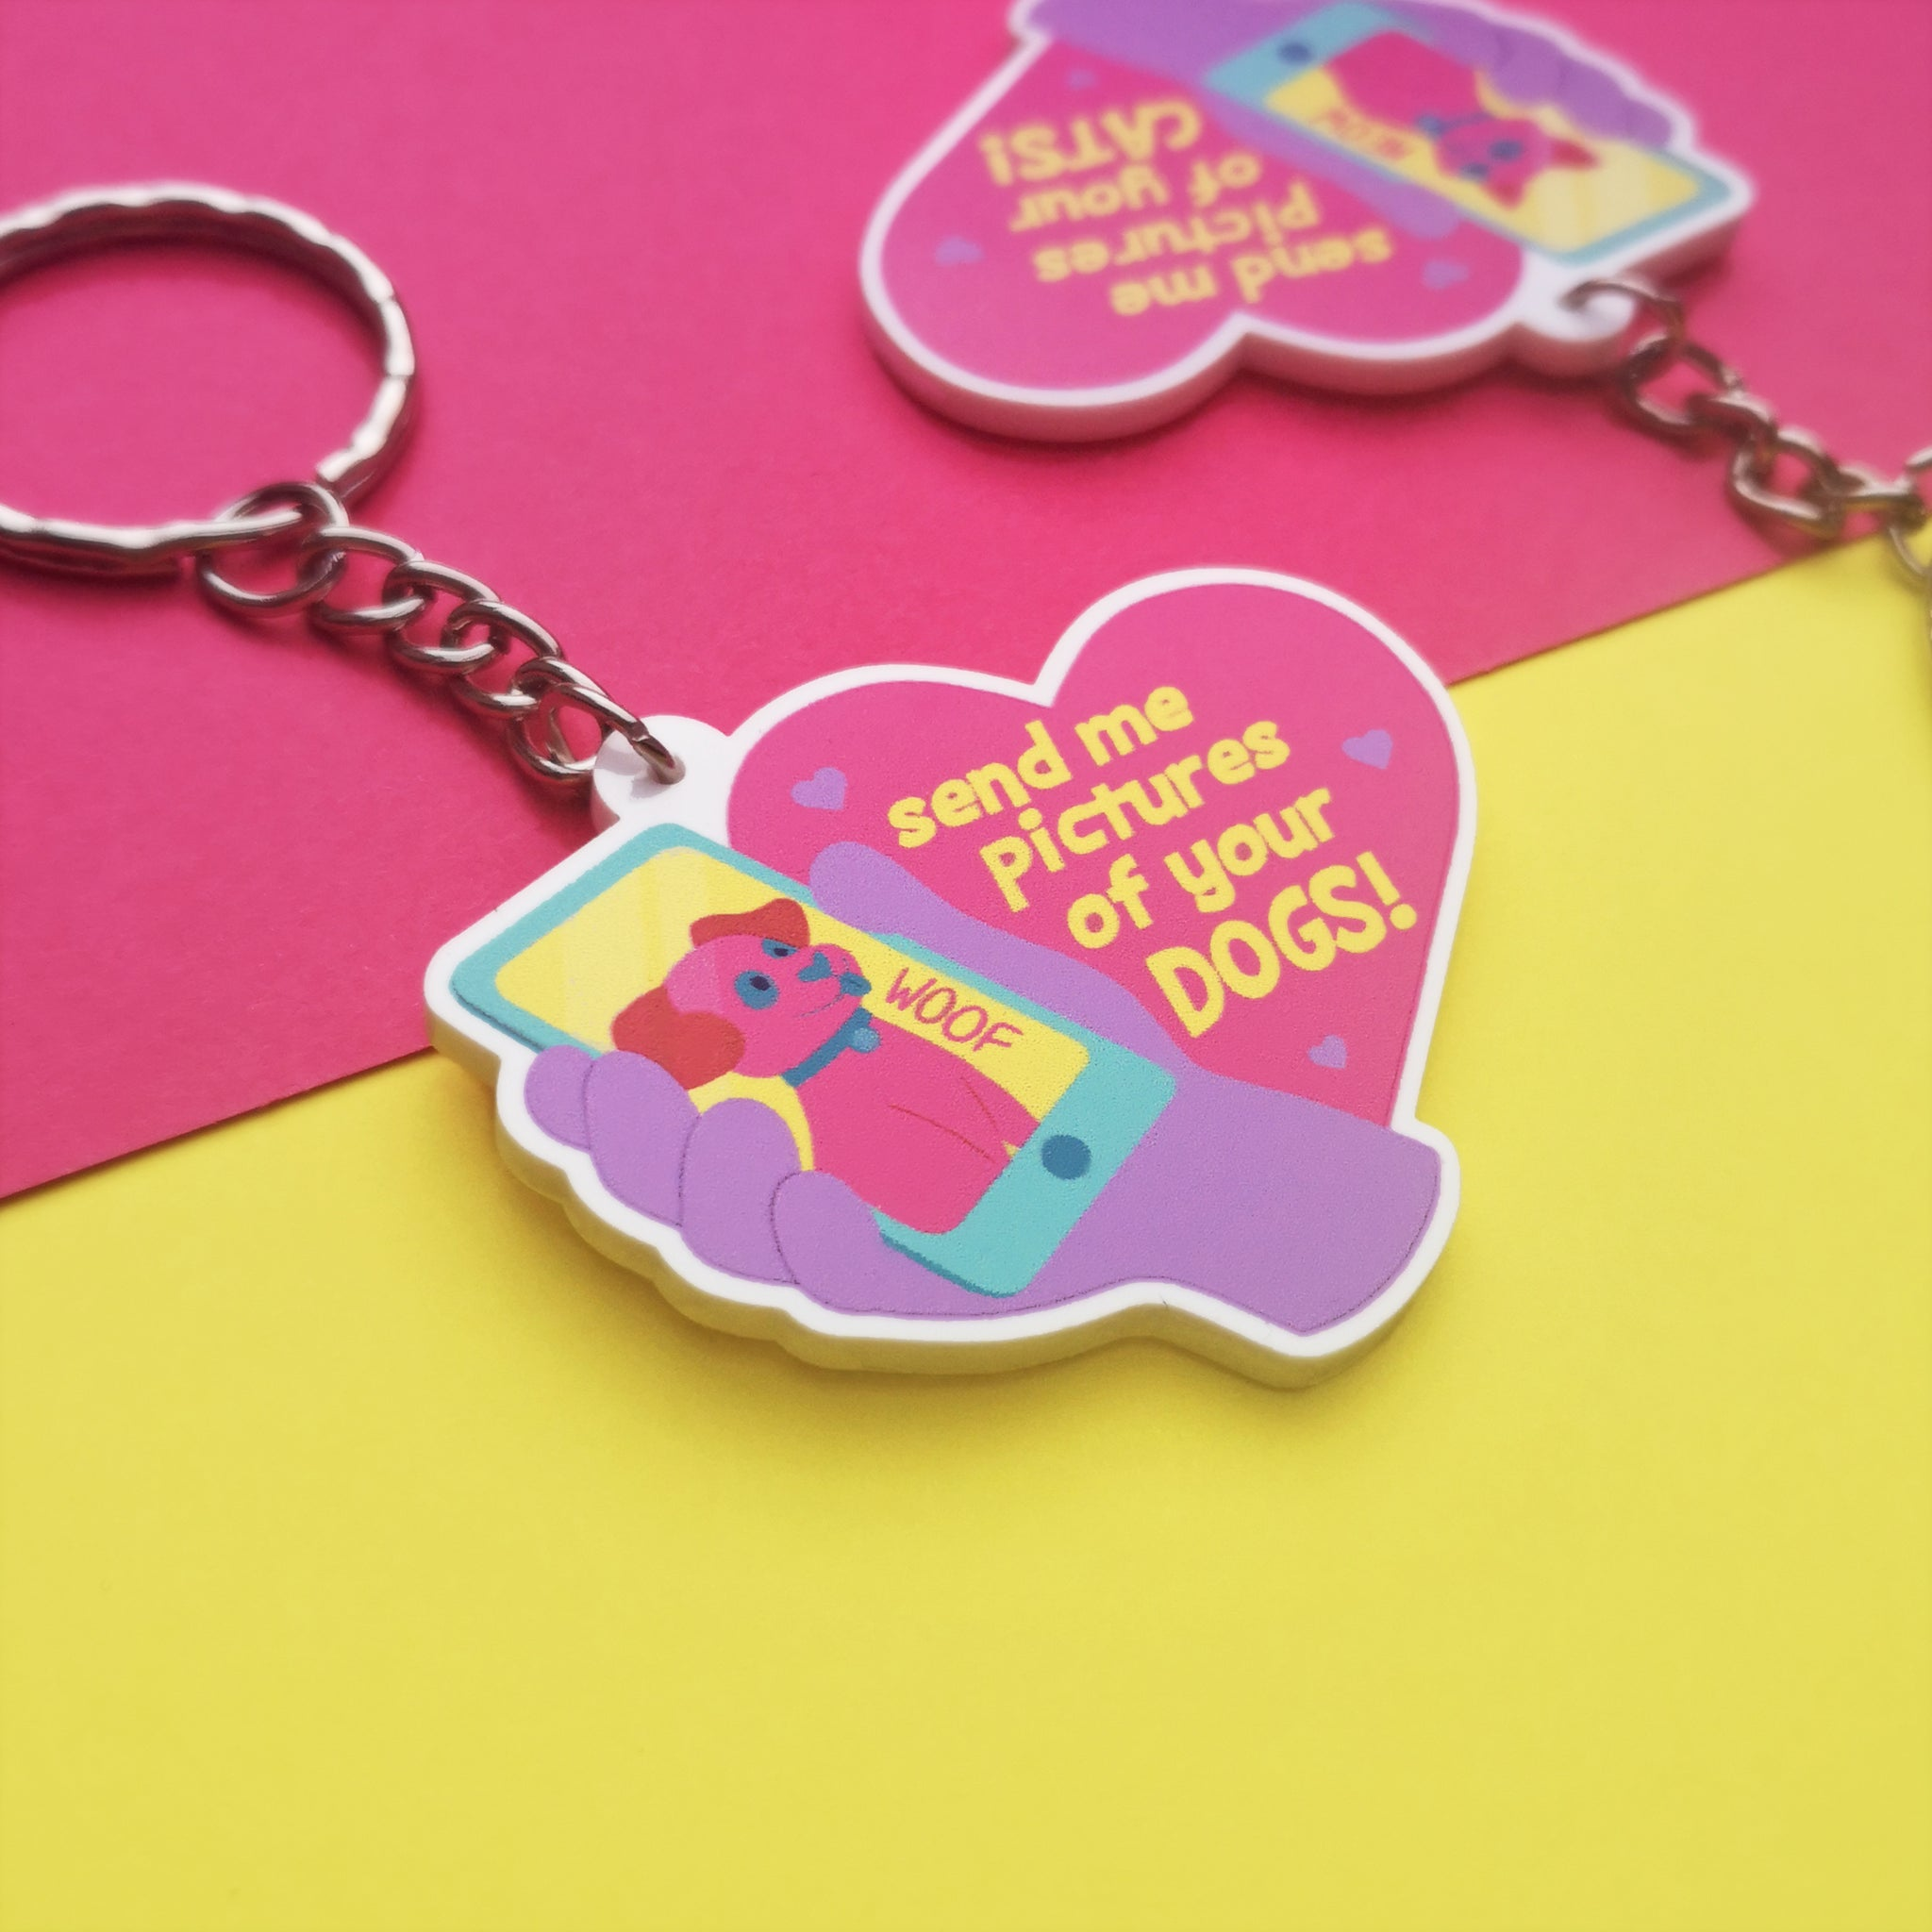 Send me pictures of your DOG Keychain